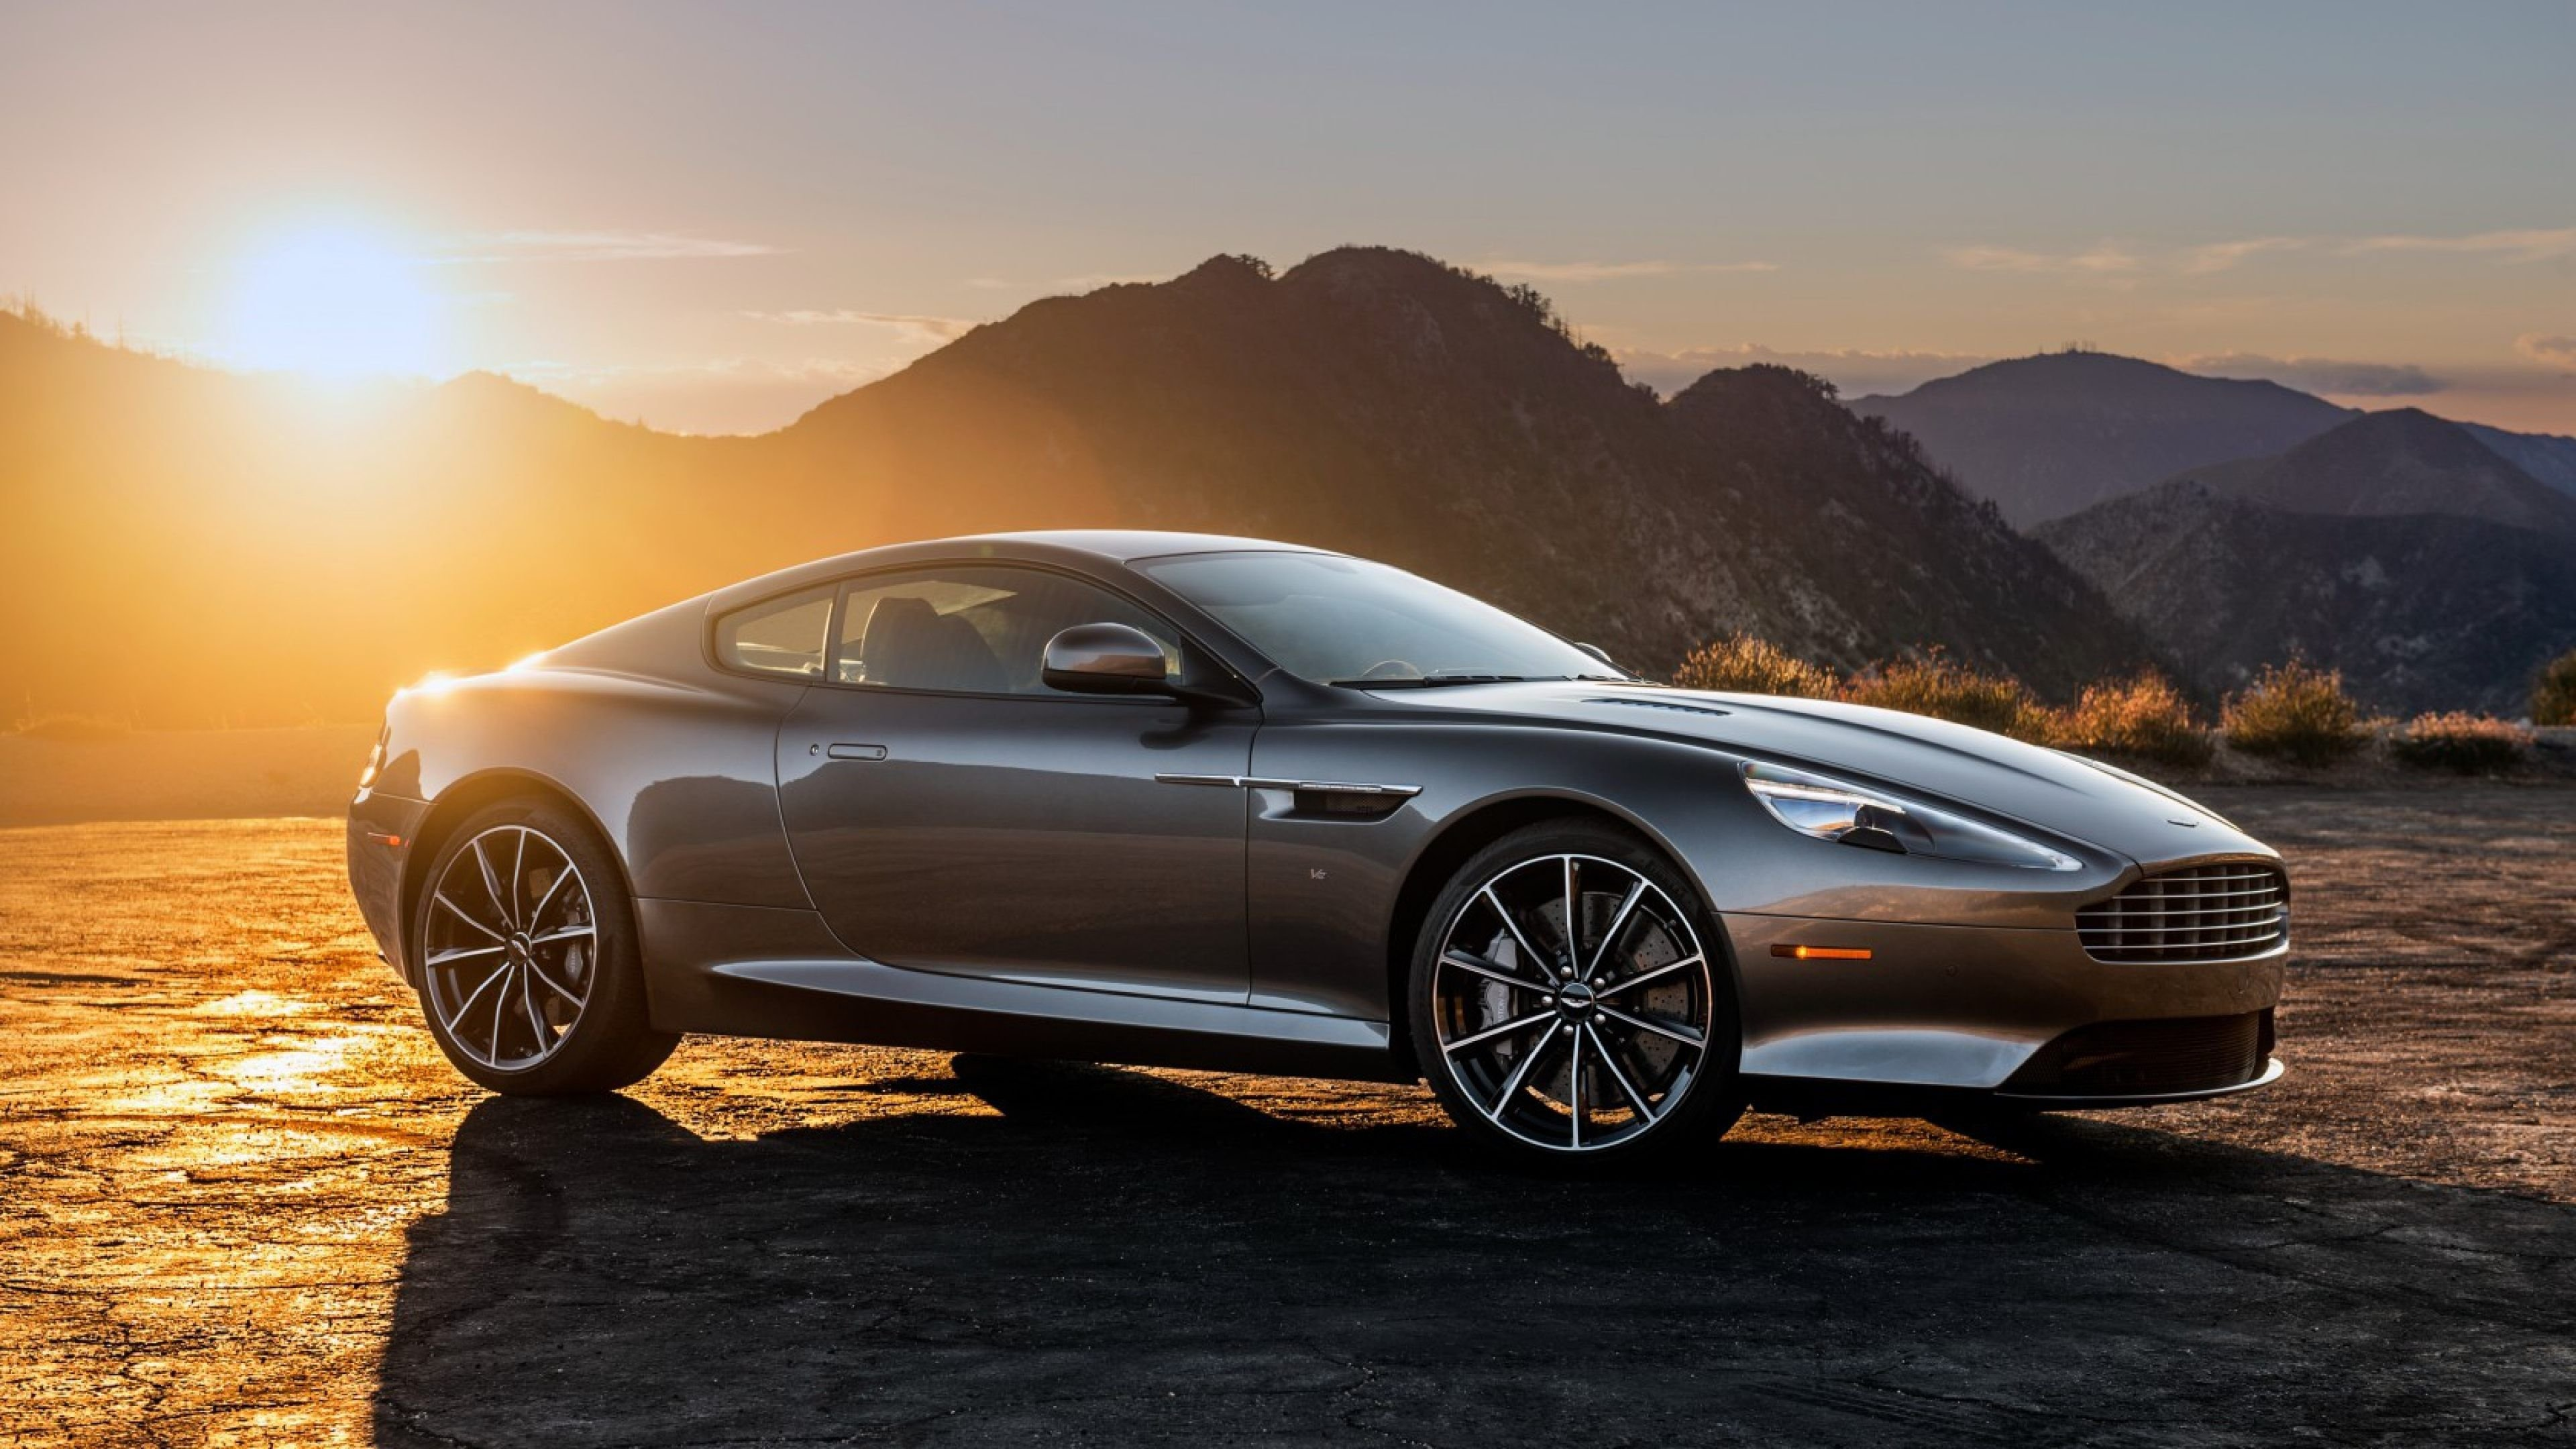 Latest Db9 Aston Martin Car 4K Ultra Hd Wallpaper Ololoshenka Free Download